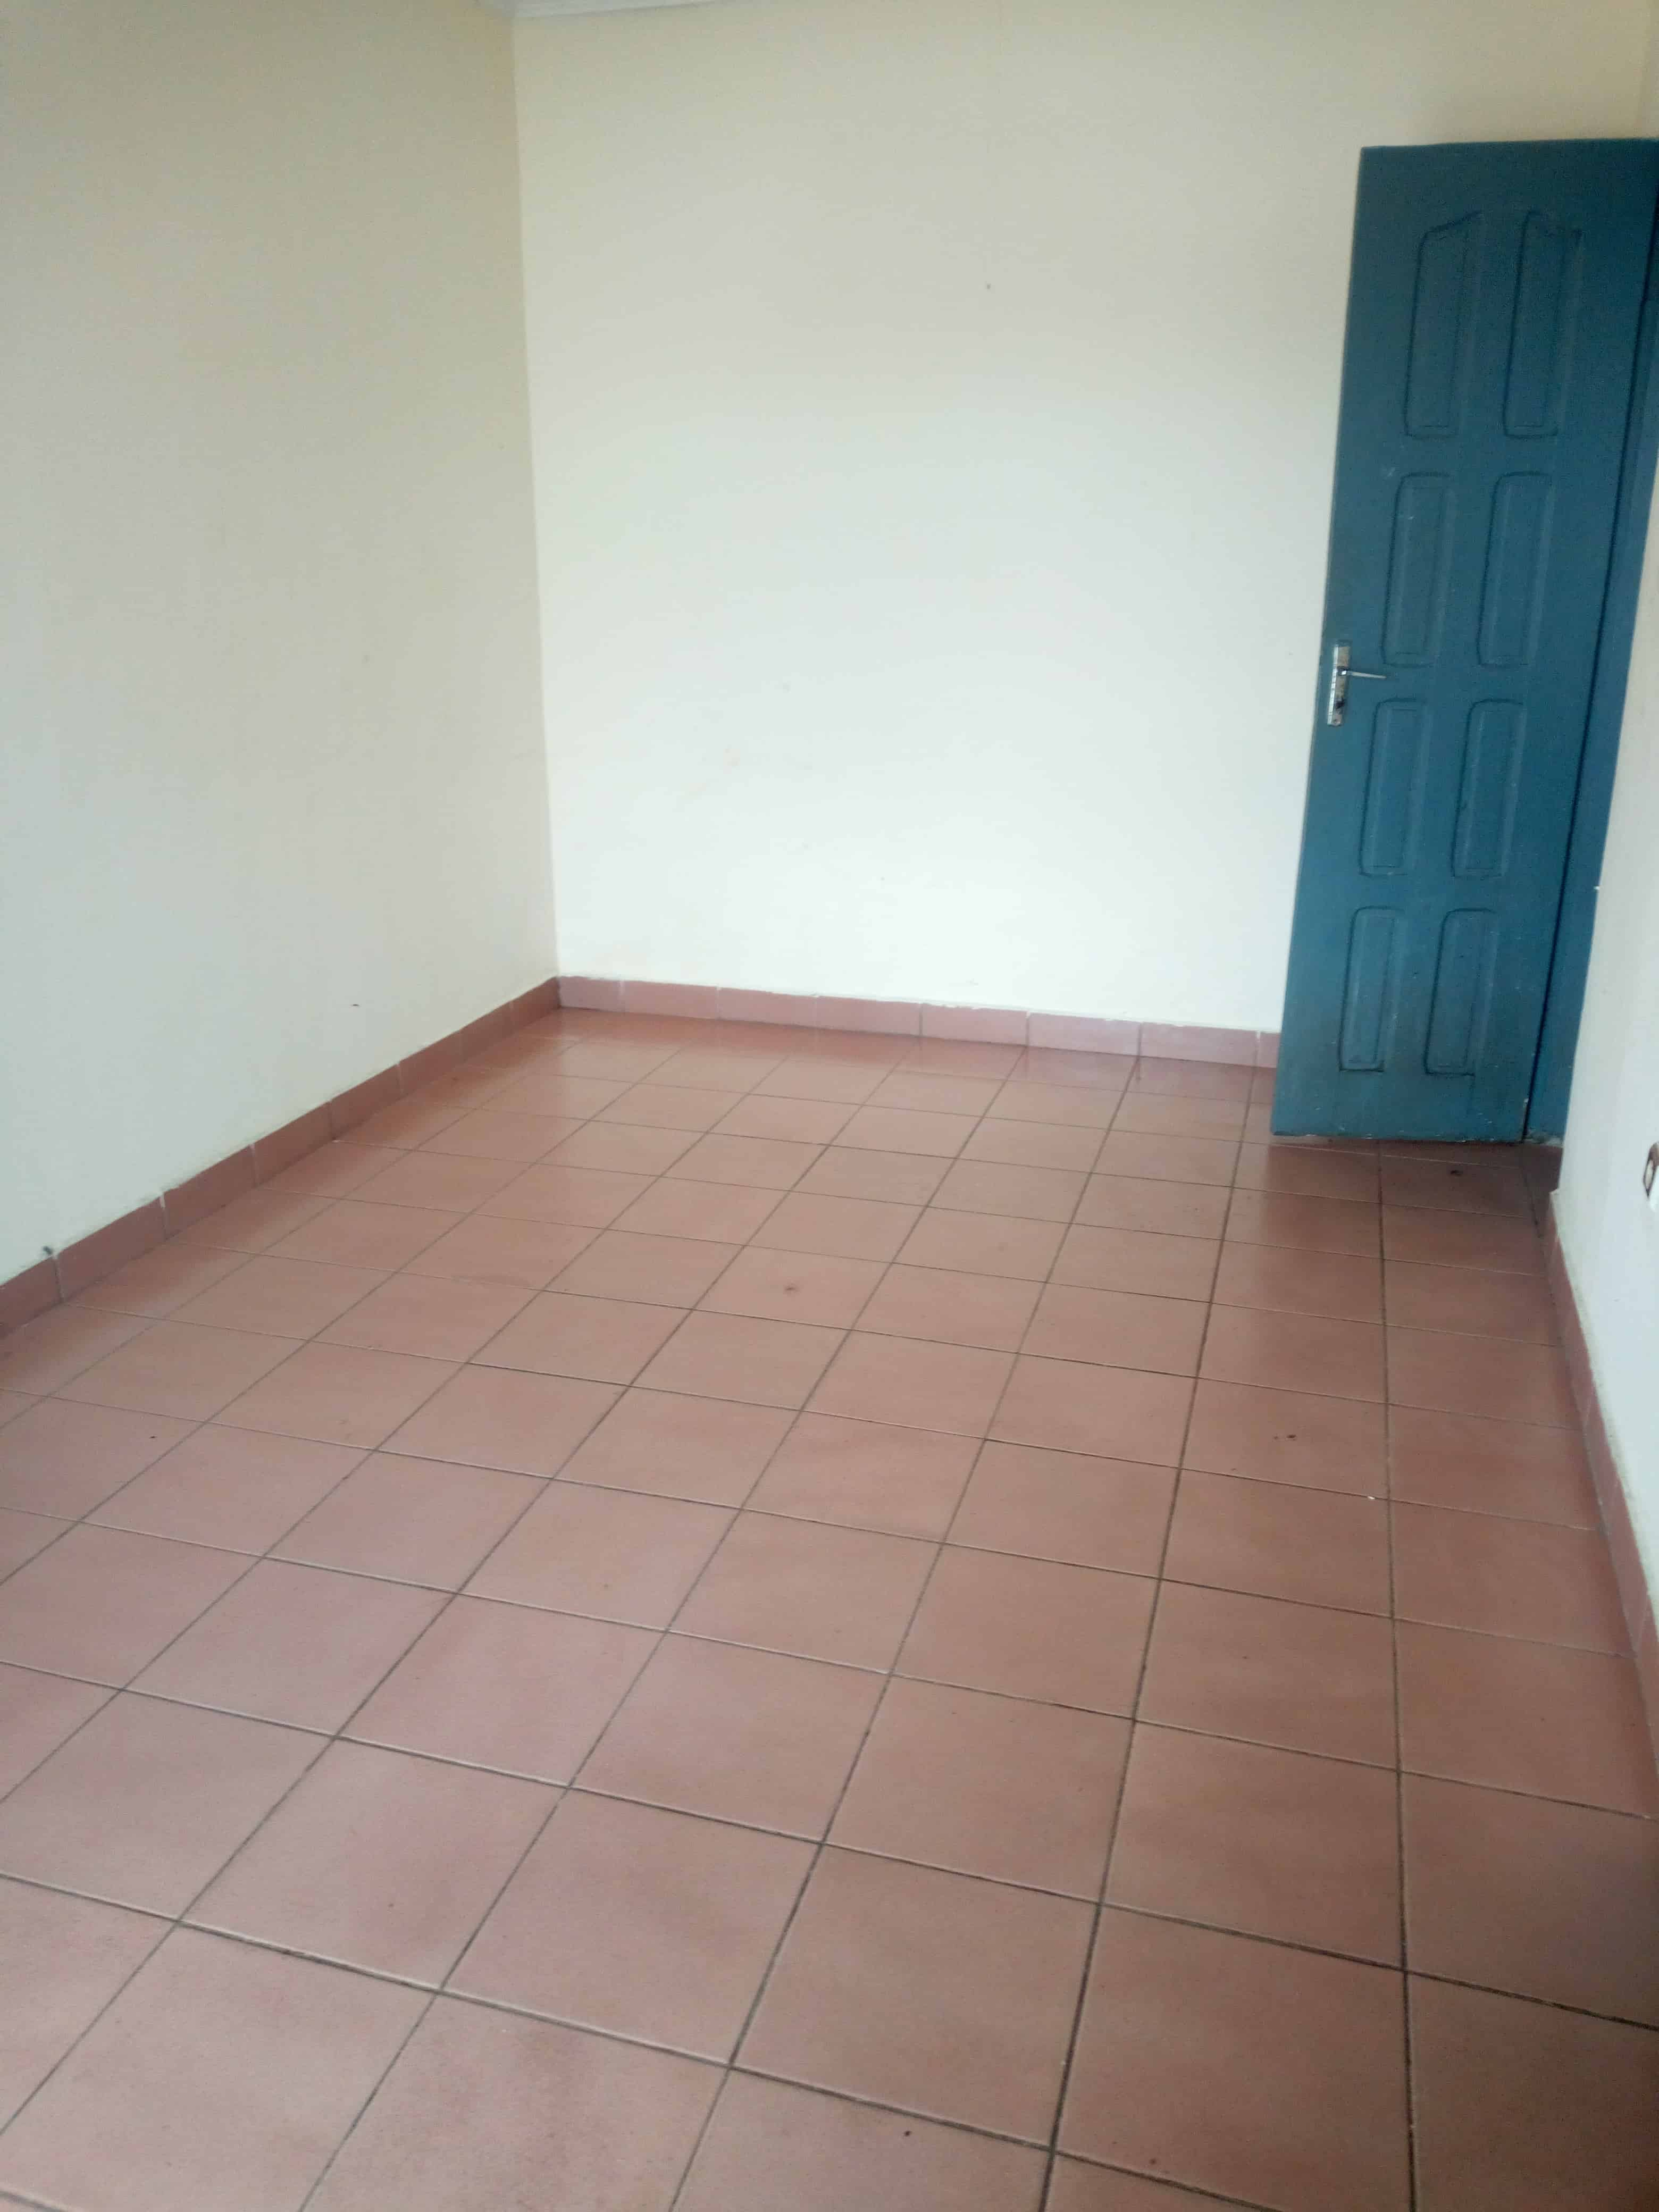 Apartment to rent - Douala, Makepe, Rond pauleng - 1 living room(s), 1 bedroom(s), 1 bathroom(s) - 65 000 FCFA / month